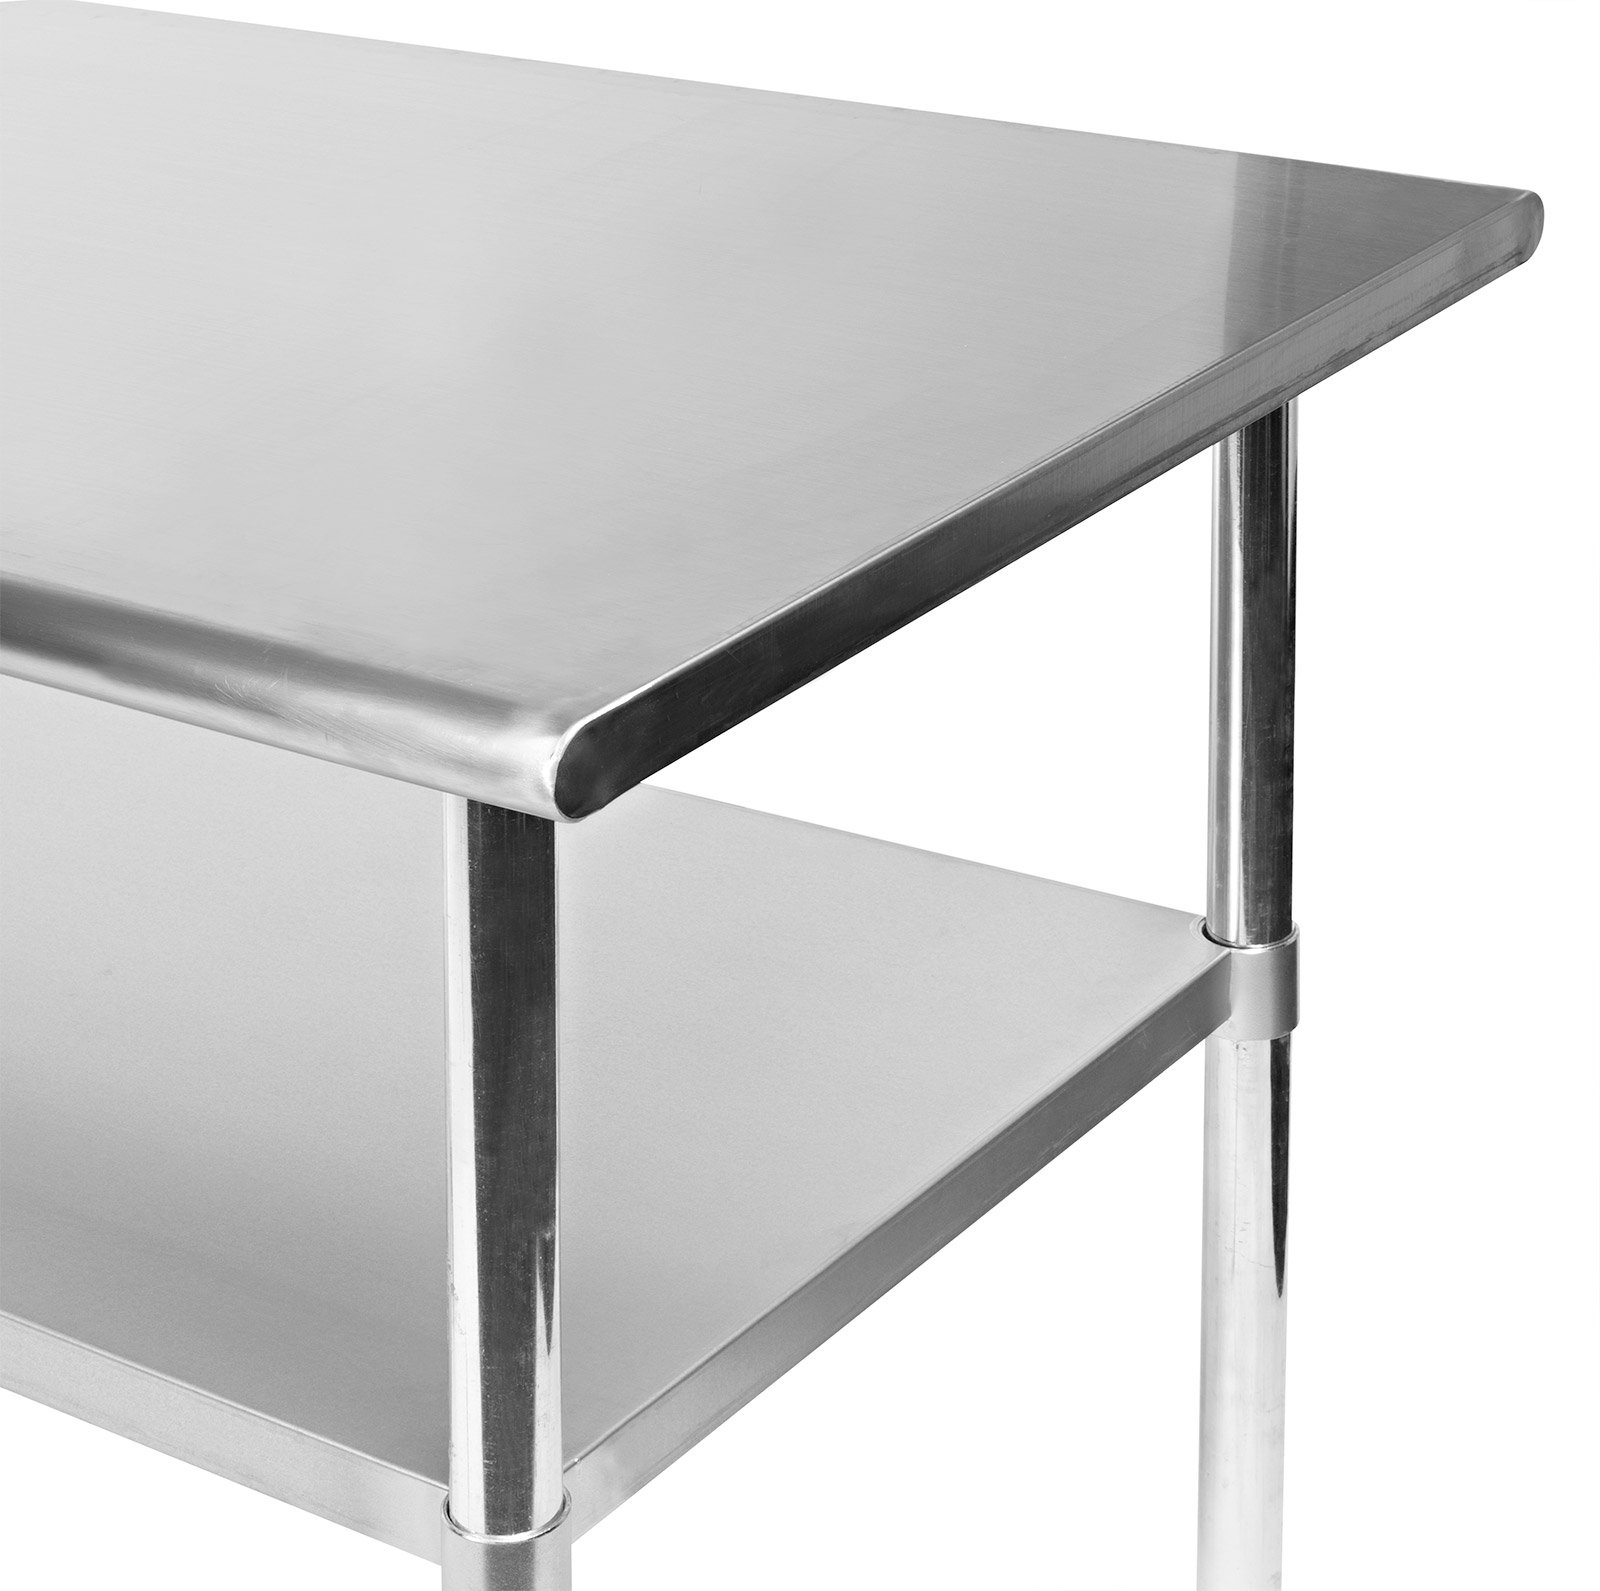 Gridmann Stainless Steel Commercial Kitchen Prep & Work Table - 36 in. x 24 in. by Gridmann (Image #3)